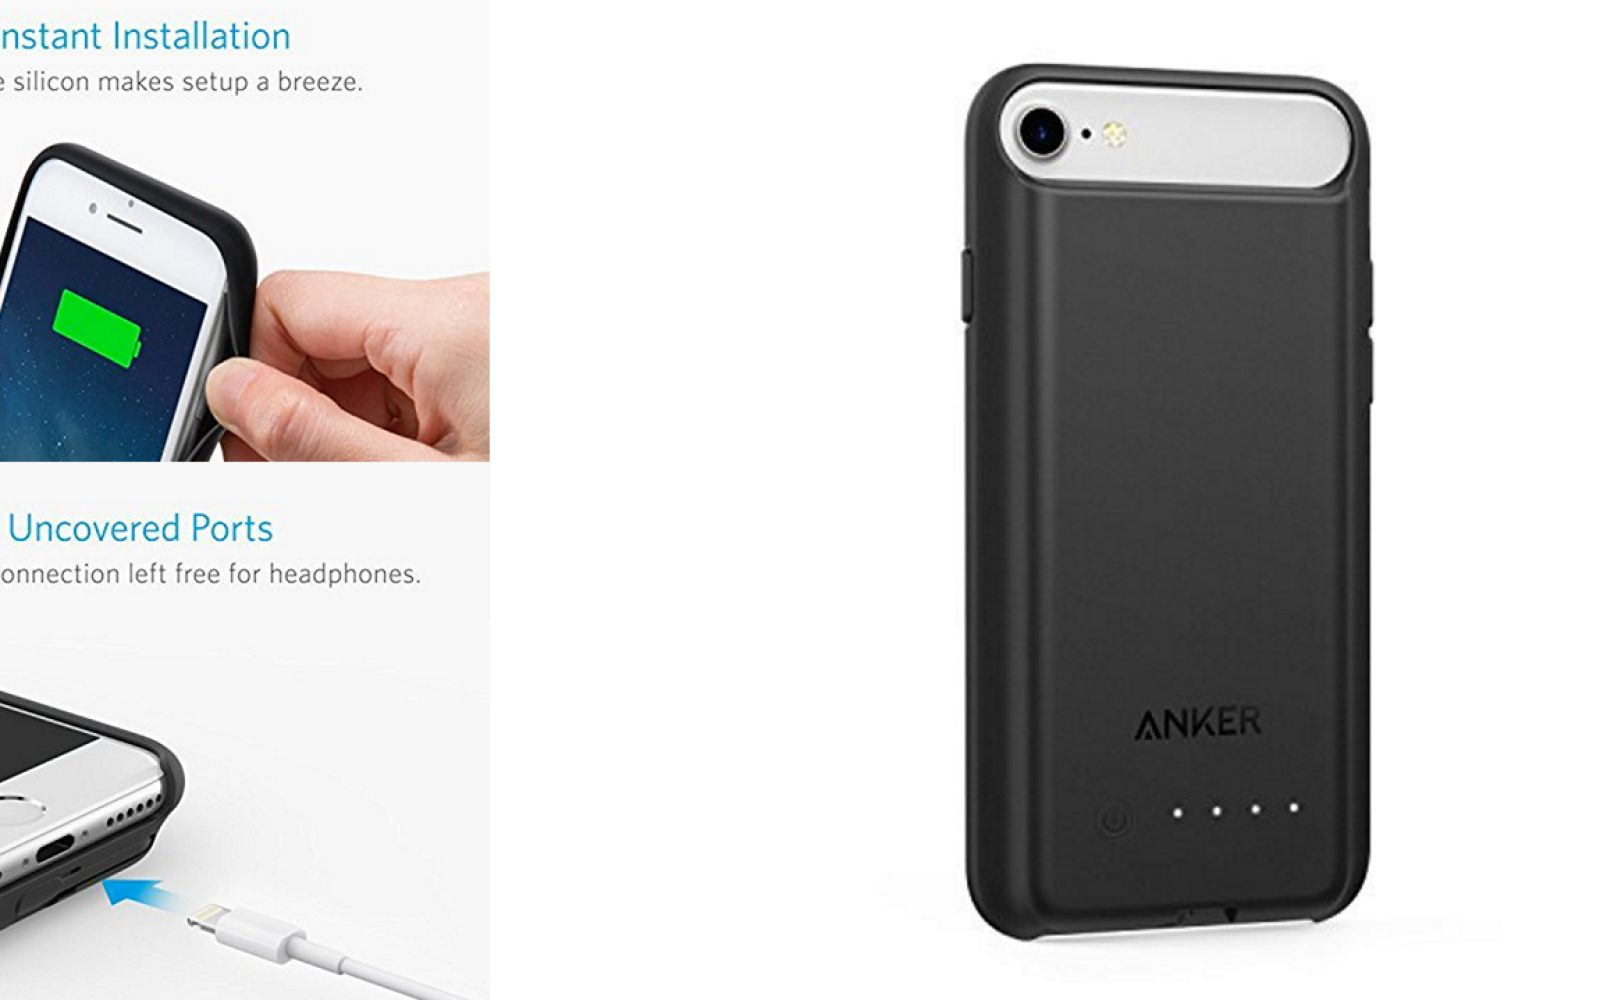 sports shoes 41f8a 77bba Anker takes the wraps off new slim iPhone 7 battery case with ...